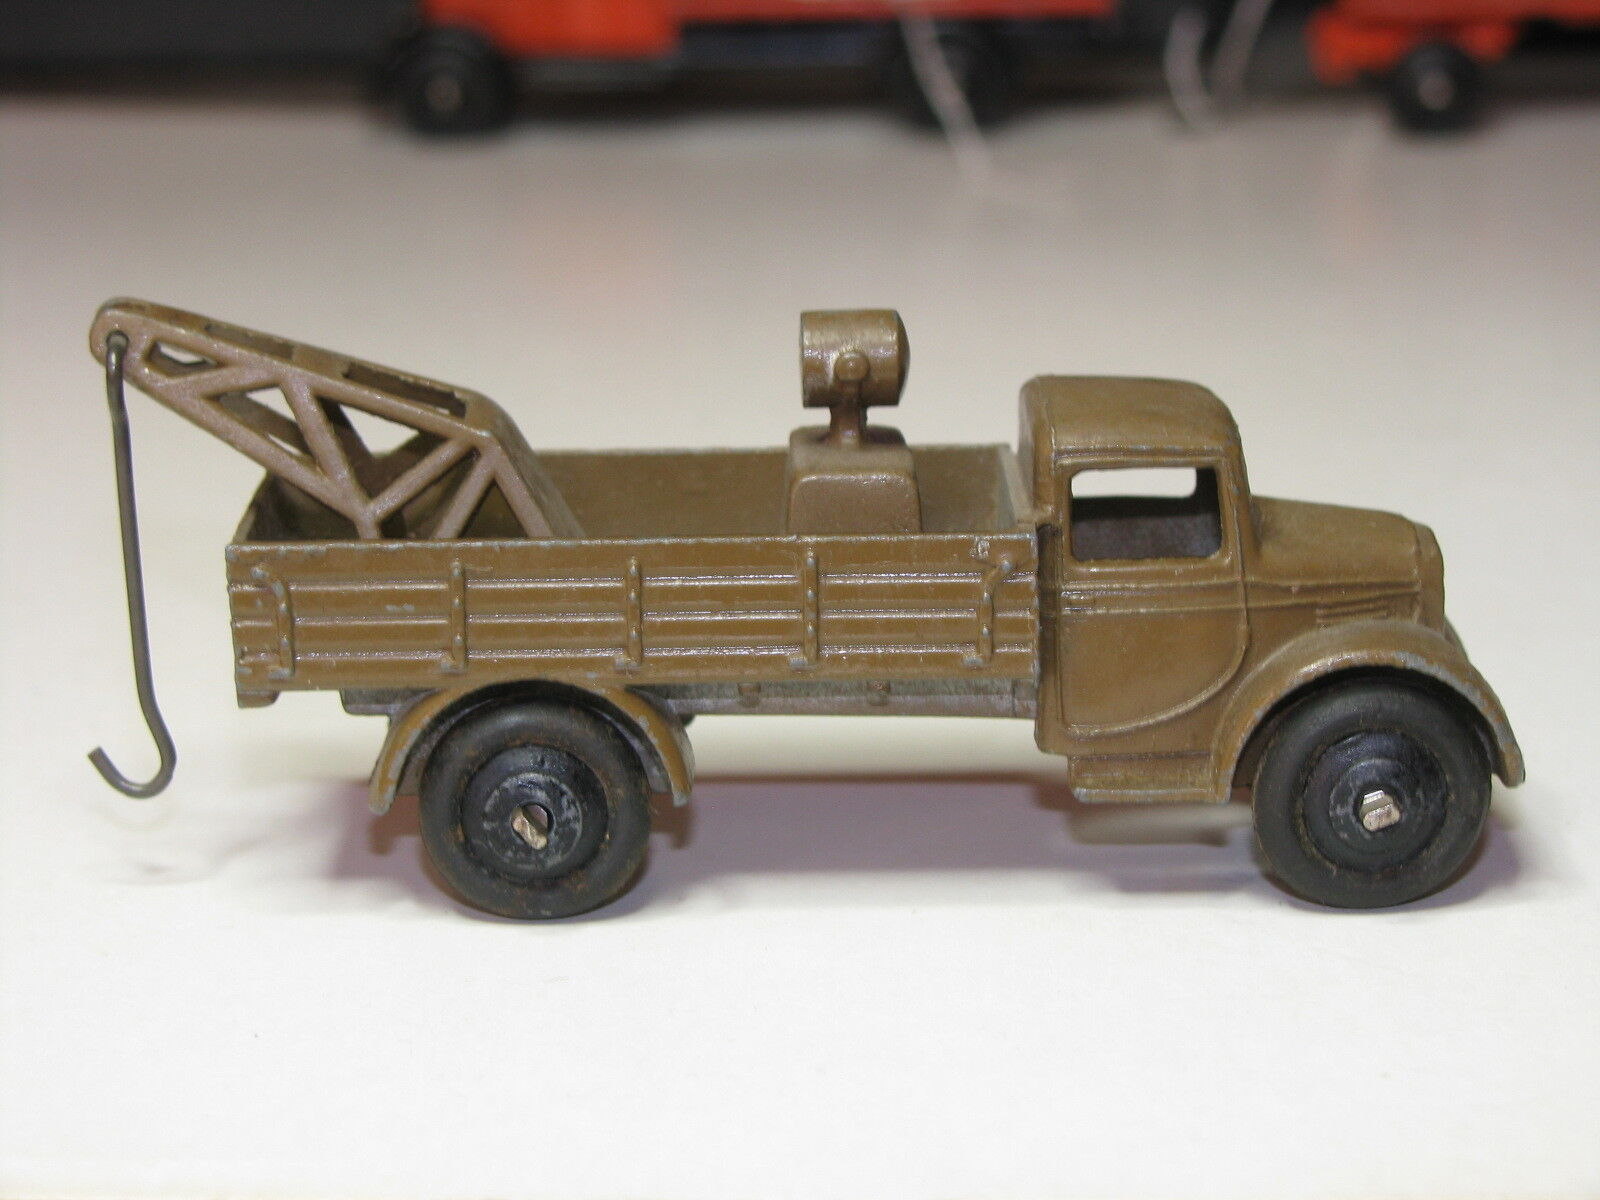 DINKY TOYS N°30e VINTAGE (Post War) Breakdown Car Truck -  EXCELLENT CONDITION